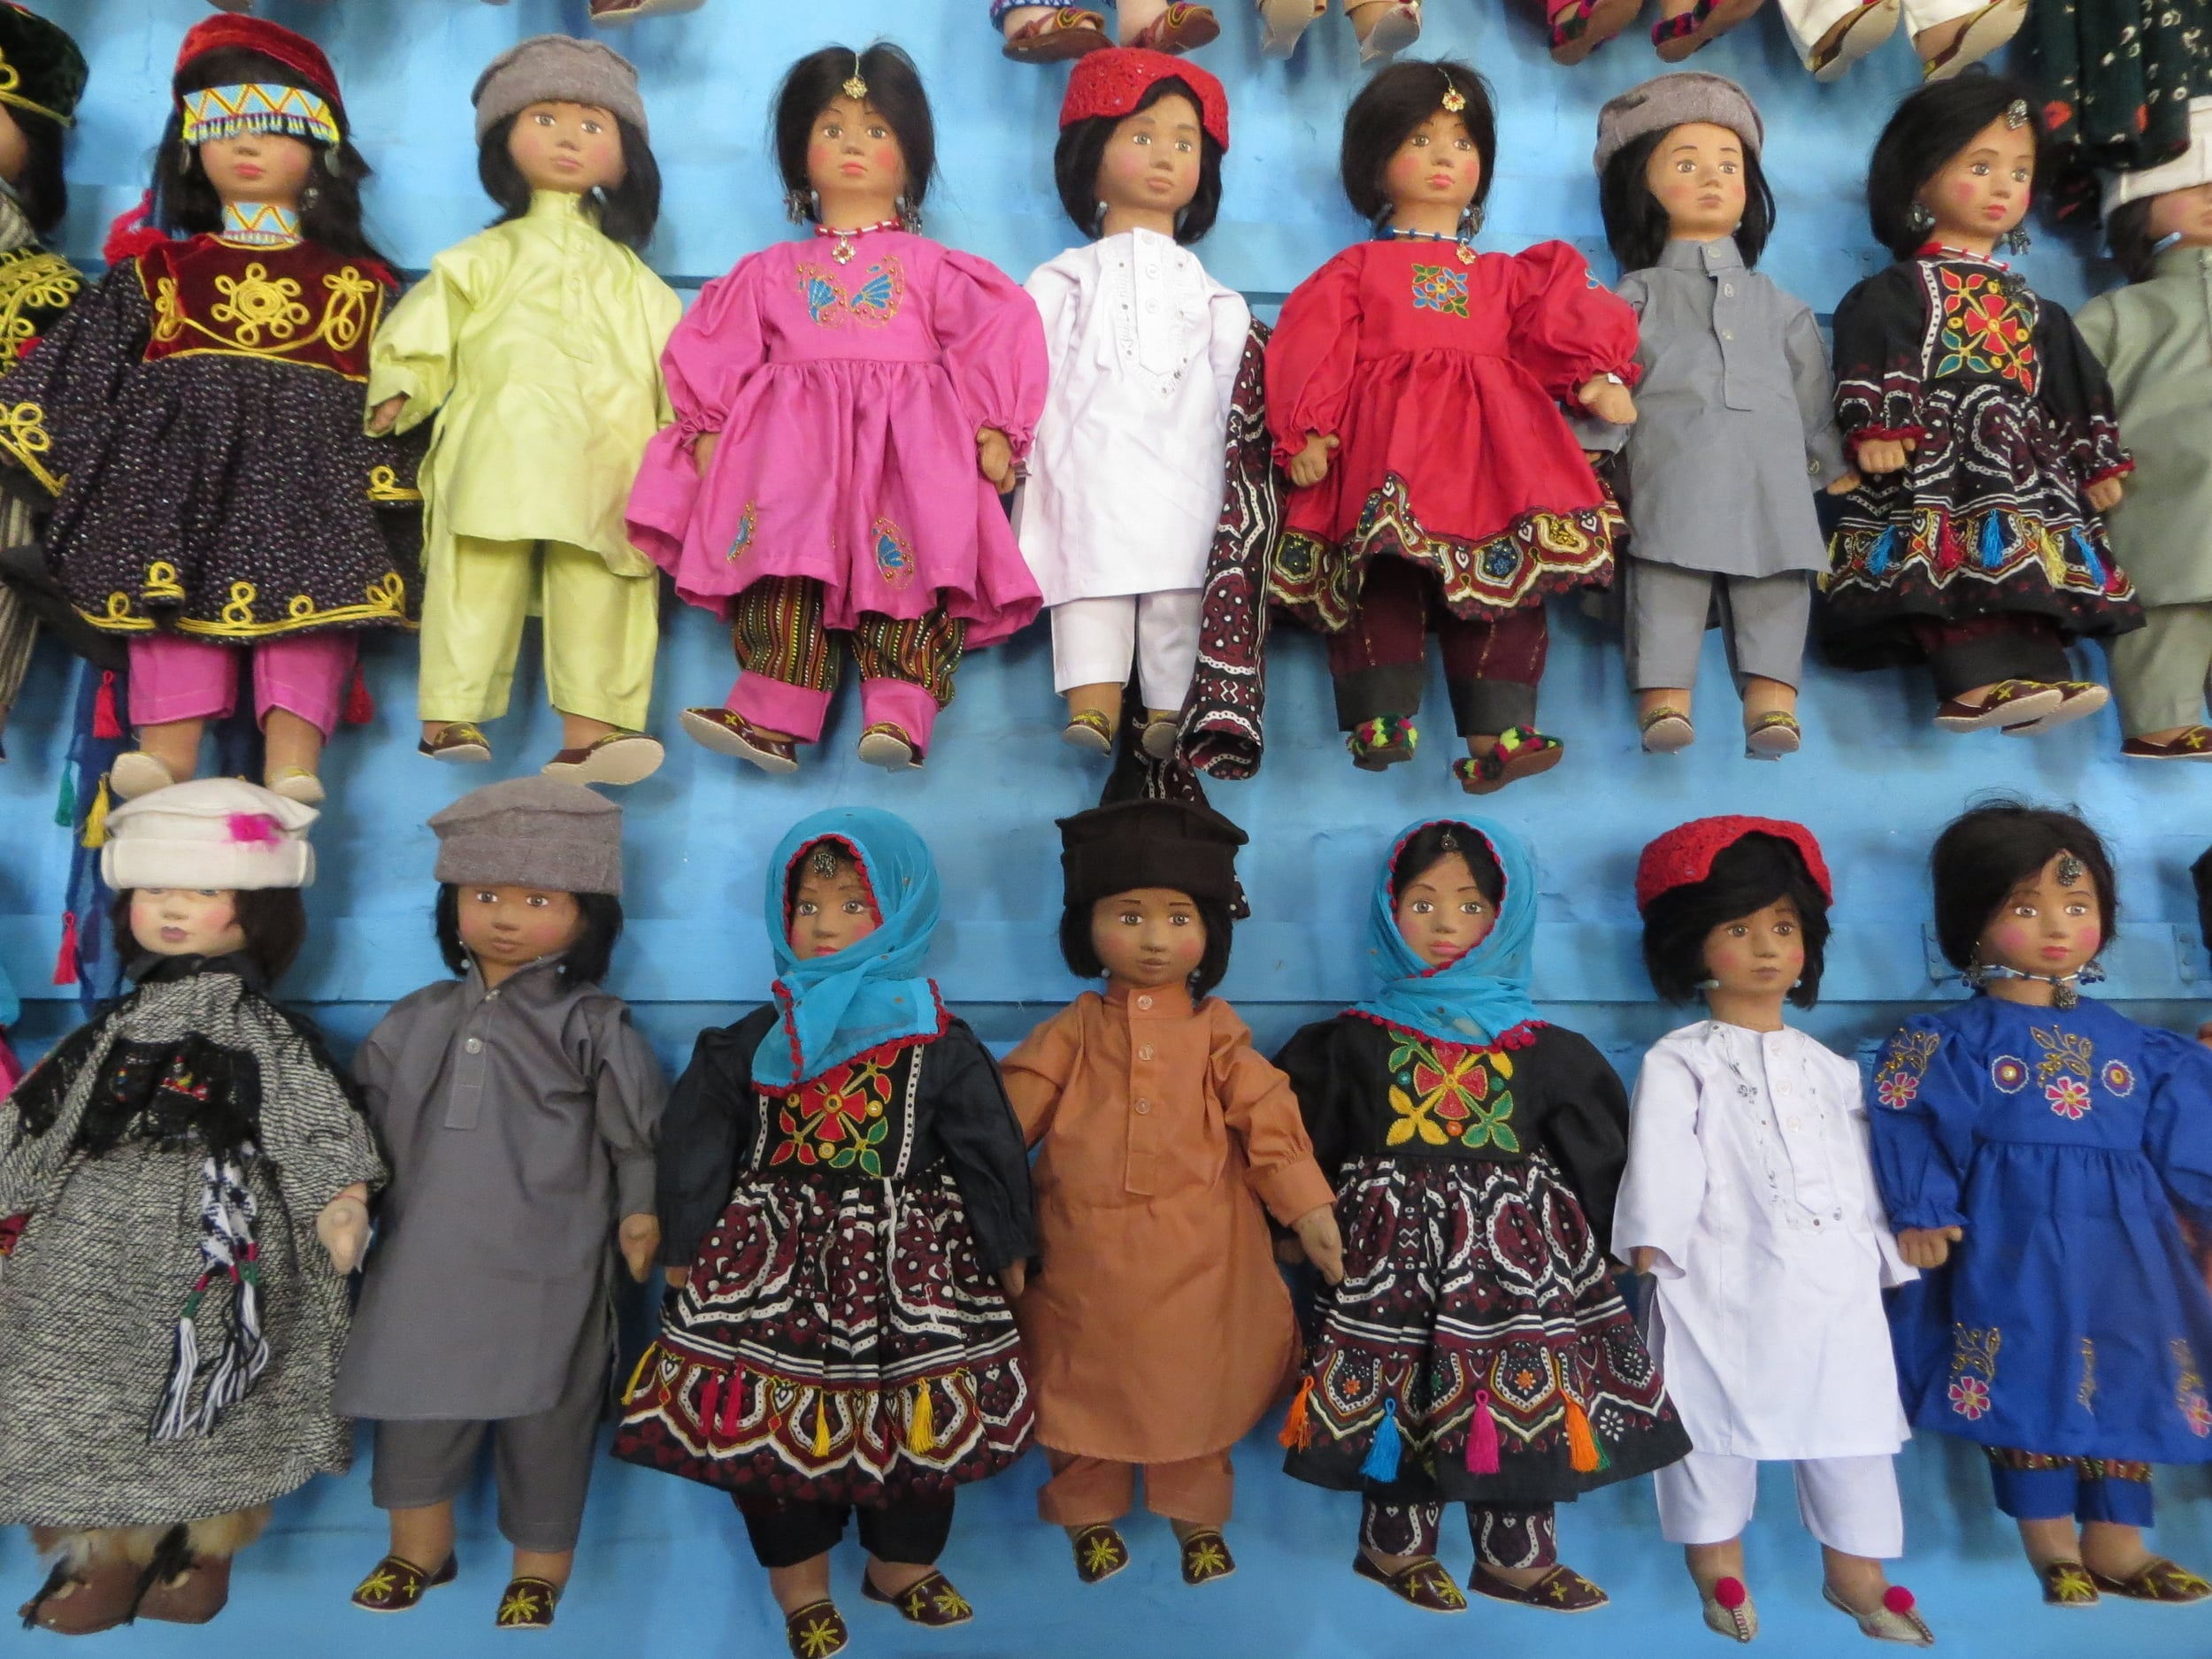 A ROW OF DOLLS DISPLAY THE VARIETY OF TRADITIONAL CLOTHING WORN IN PAKISTAN AT A SHOP OUTSIDE THE RAFIPEER CULTURAL CENTER IN LAHORE.PHOTO BY BEENISH AHMED.